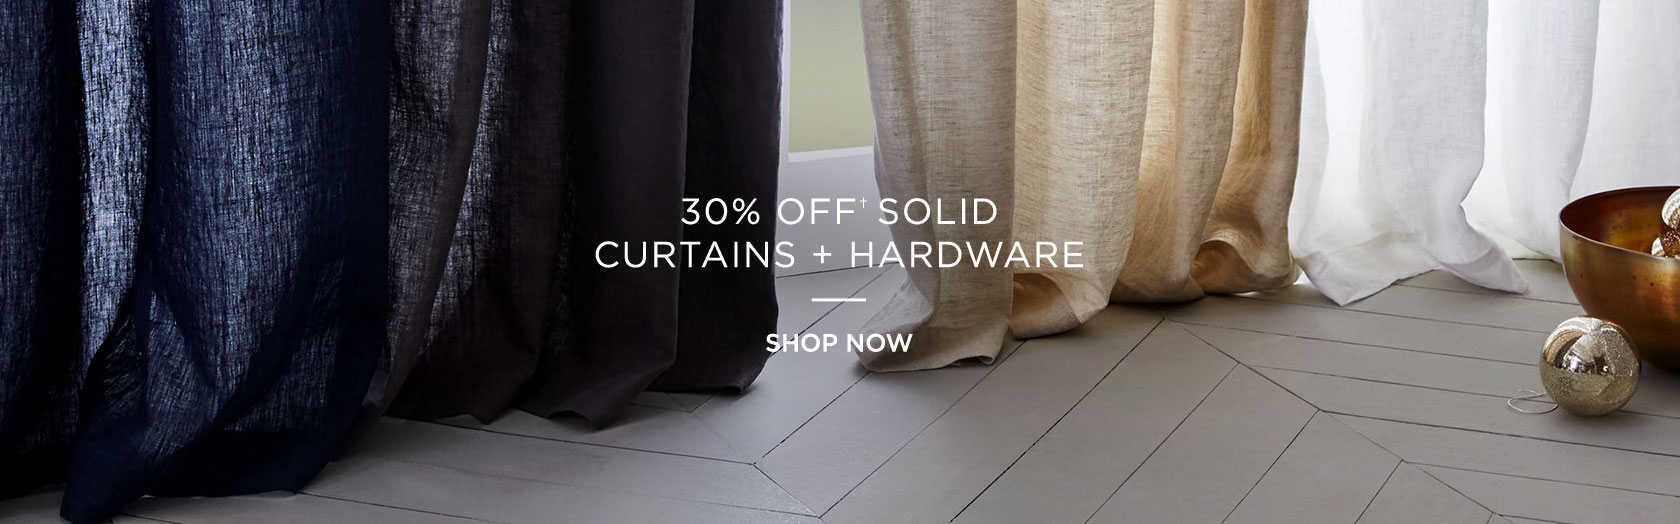 30 Percent Off Solid Curtains + Hardware